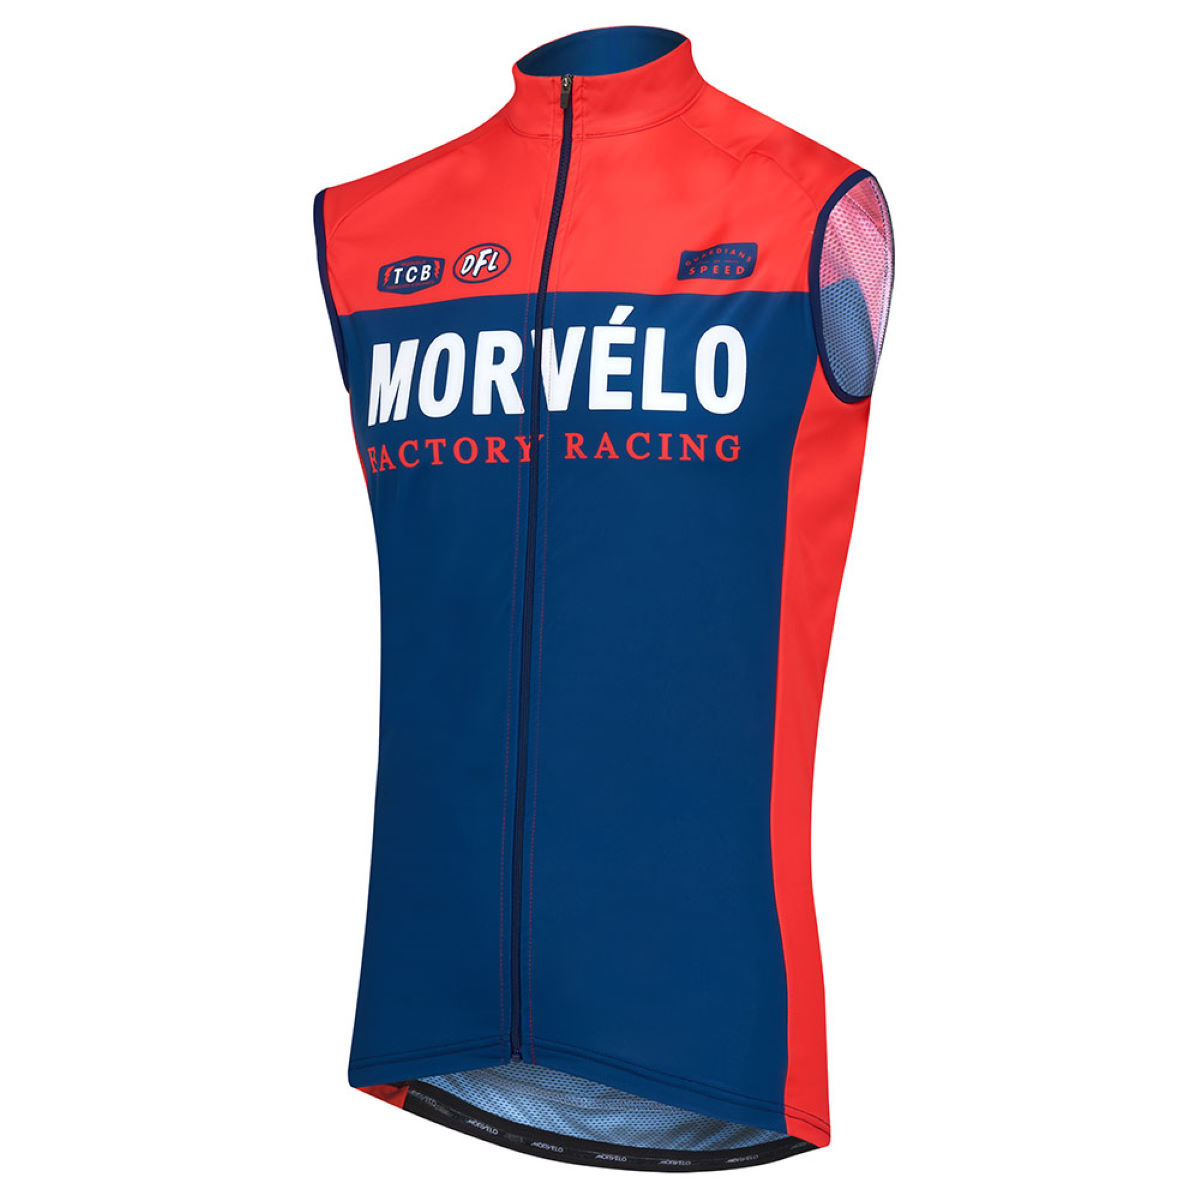 Gilet sans manches VTT Morvelo Factory Racing Covert - XL Factory Racing Gilets vélo